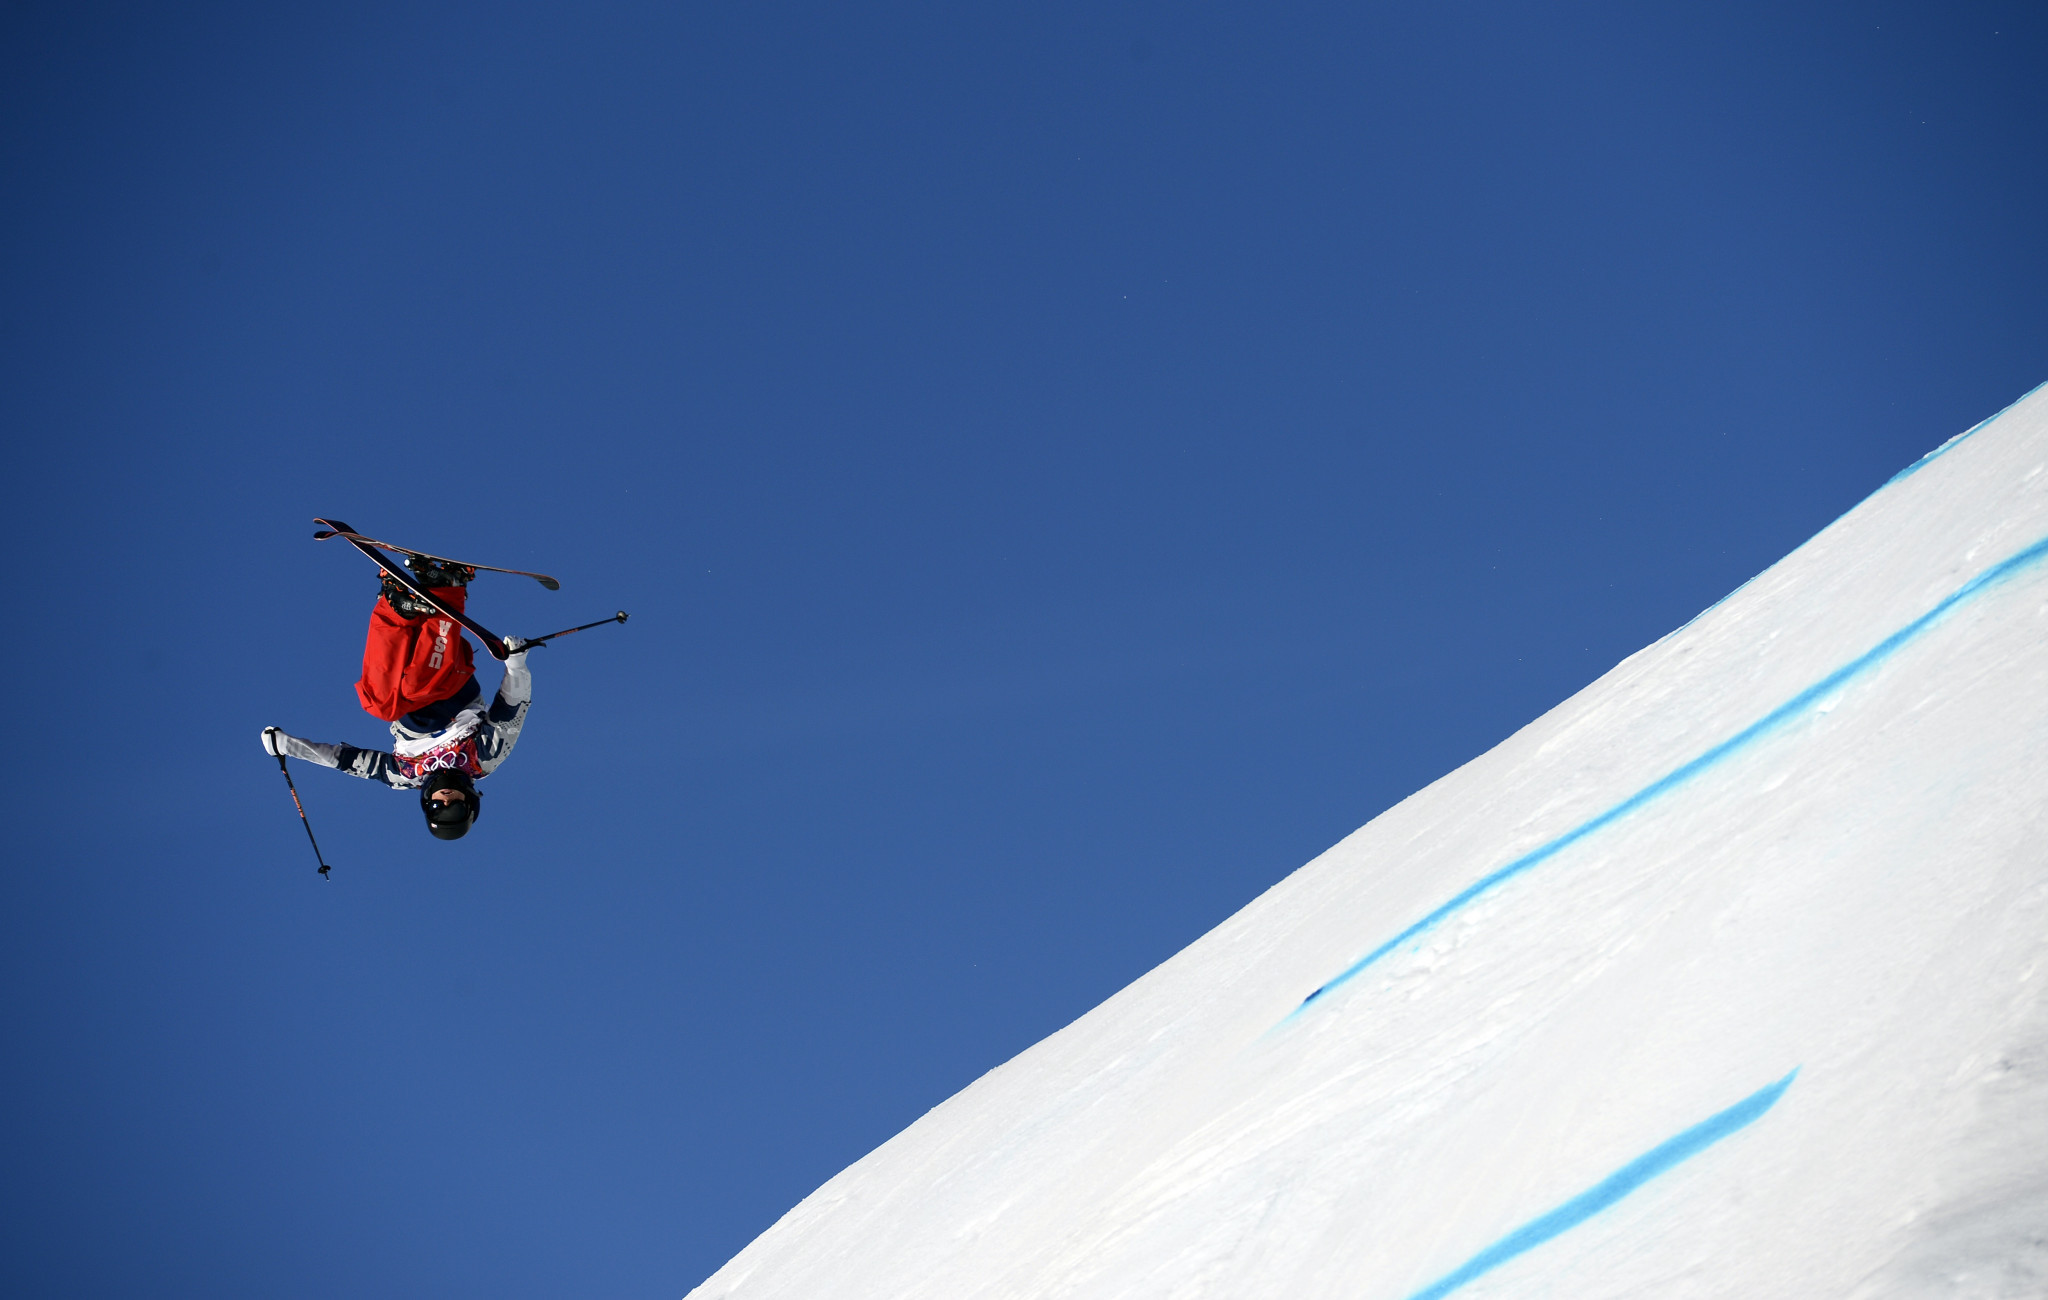 Gus Kenworthy won the men's slopestyle silver medal at the Sochi 2014 Winter Olympic Games ©Getty Images